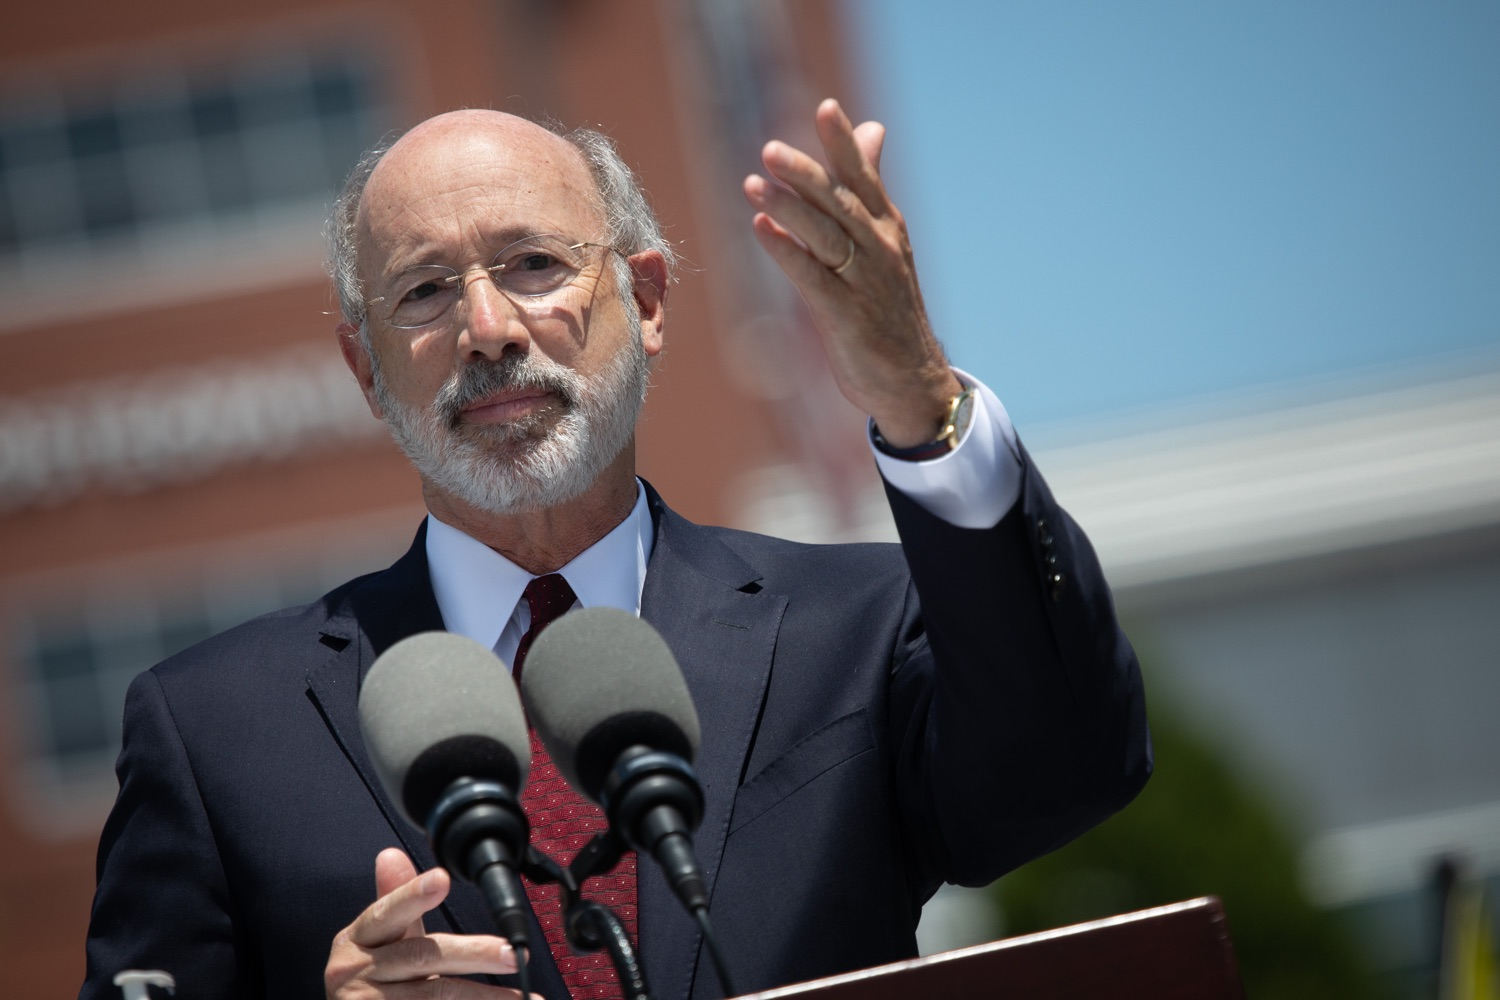 "<a href=""https://filesource.wostreaming.net/commonwealthofpa/photo/18101_gov_healthcare_dz_01.jpg"" target=""_blank"">⇣ Download Photo<br></a>Pennsylvania Governor Tom Wolf speaking at UPMC Pinnacle Community Osteopathic.As health care professionals work the front lines of the COVID-19 pandemic and the commonwealth continues to emphasize the importance of mask-wearing and social distancing to protect all, Governor Tom Wolf today visited UPMC Pinnacle Community Osteopathic Hospital in Harrisburg to thank staff and stress why mask-wearing is a necessary requirement to fight the spread of COVID-19.    Harrisburg, PA  June 29, 2020"